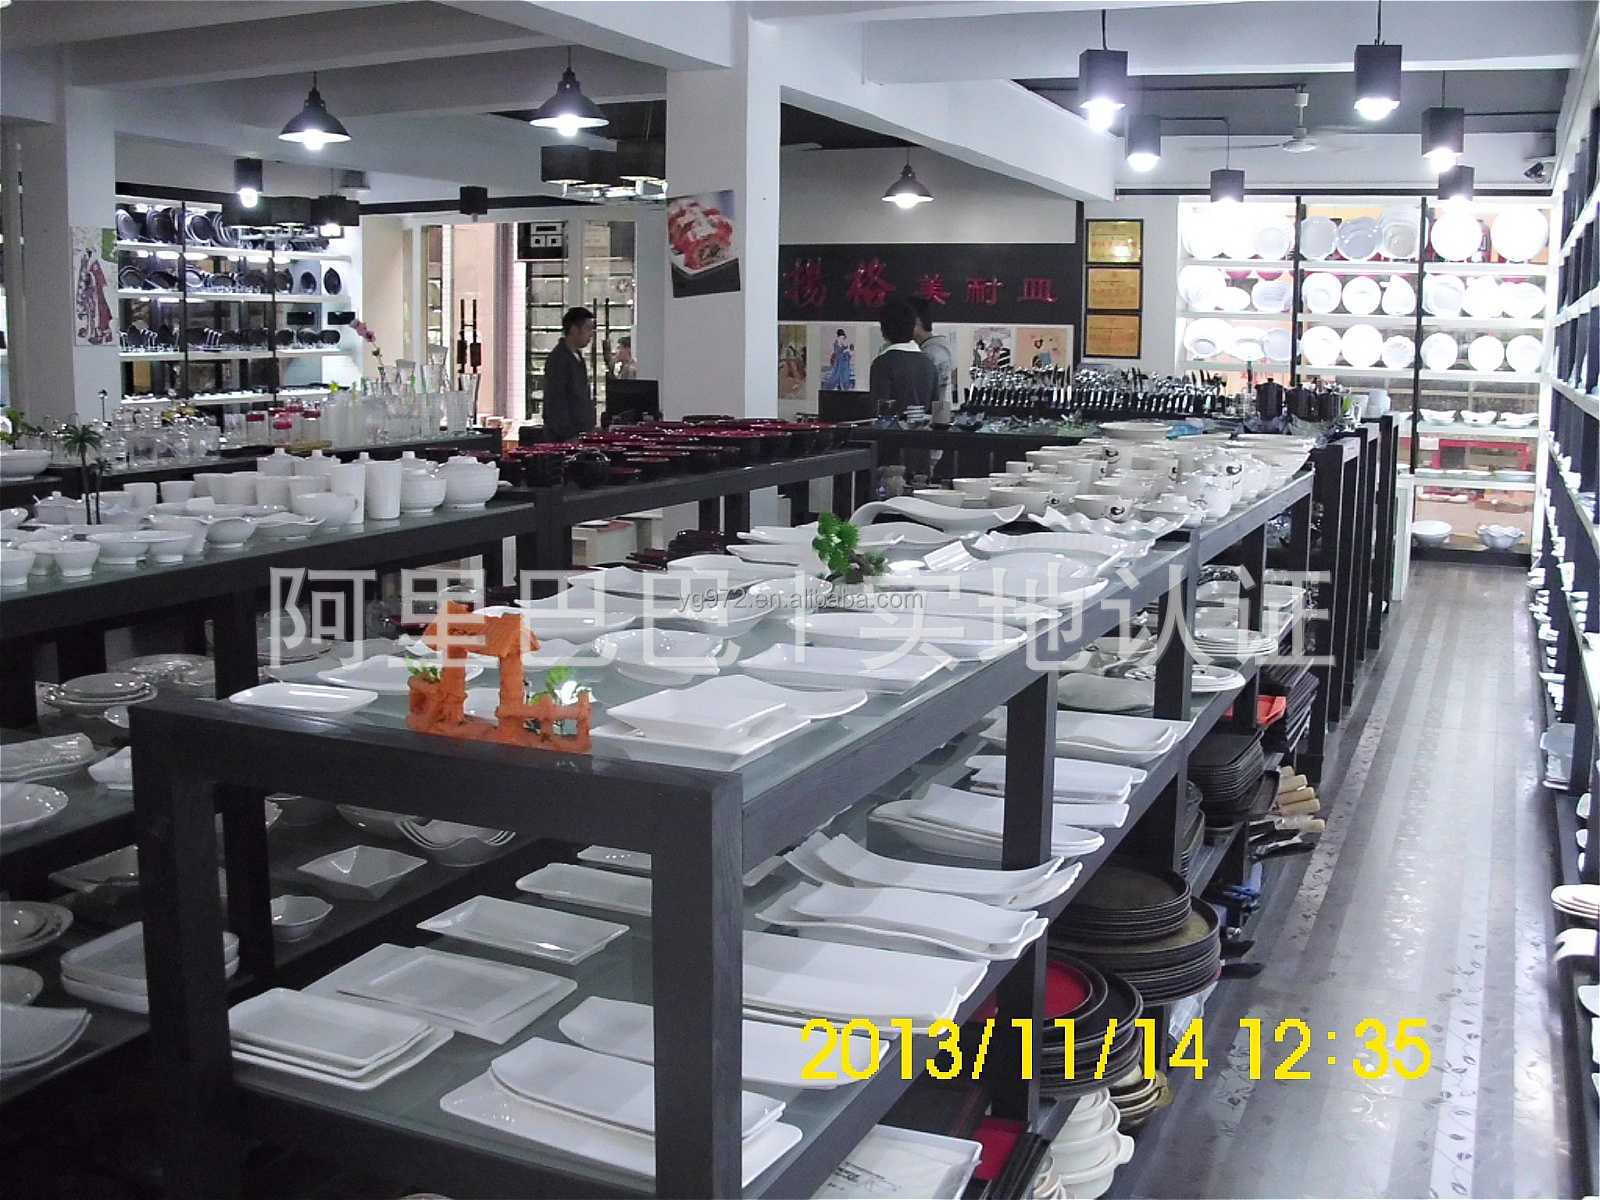 Factory Wholesale Restaurant And Hotel Use Melamine Paper Plate  Manufacturers Usa - Buy Paper Plate Manufacturers Usa,Infrared Hot  Plate,Sizzling